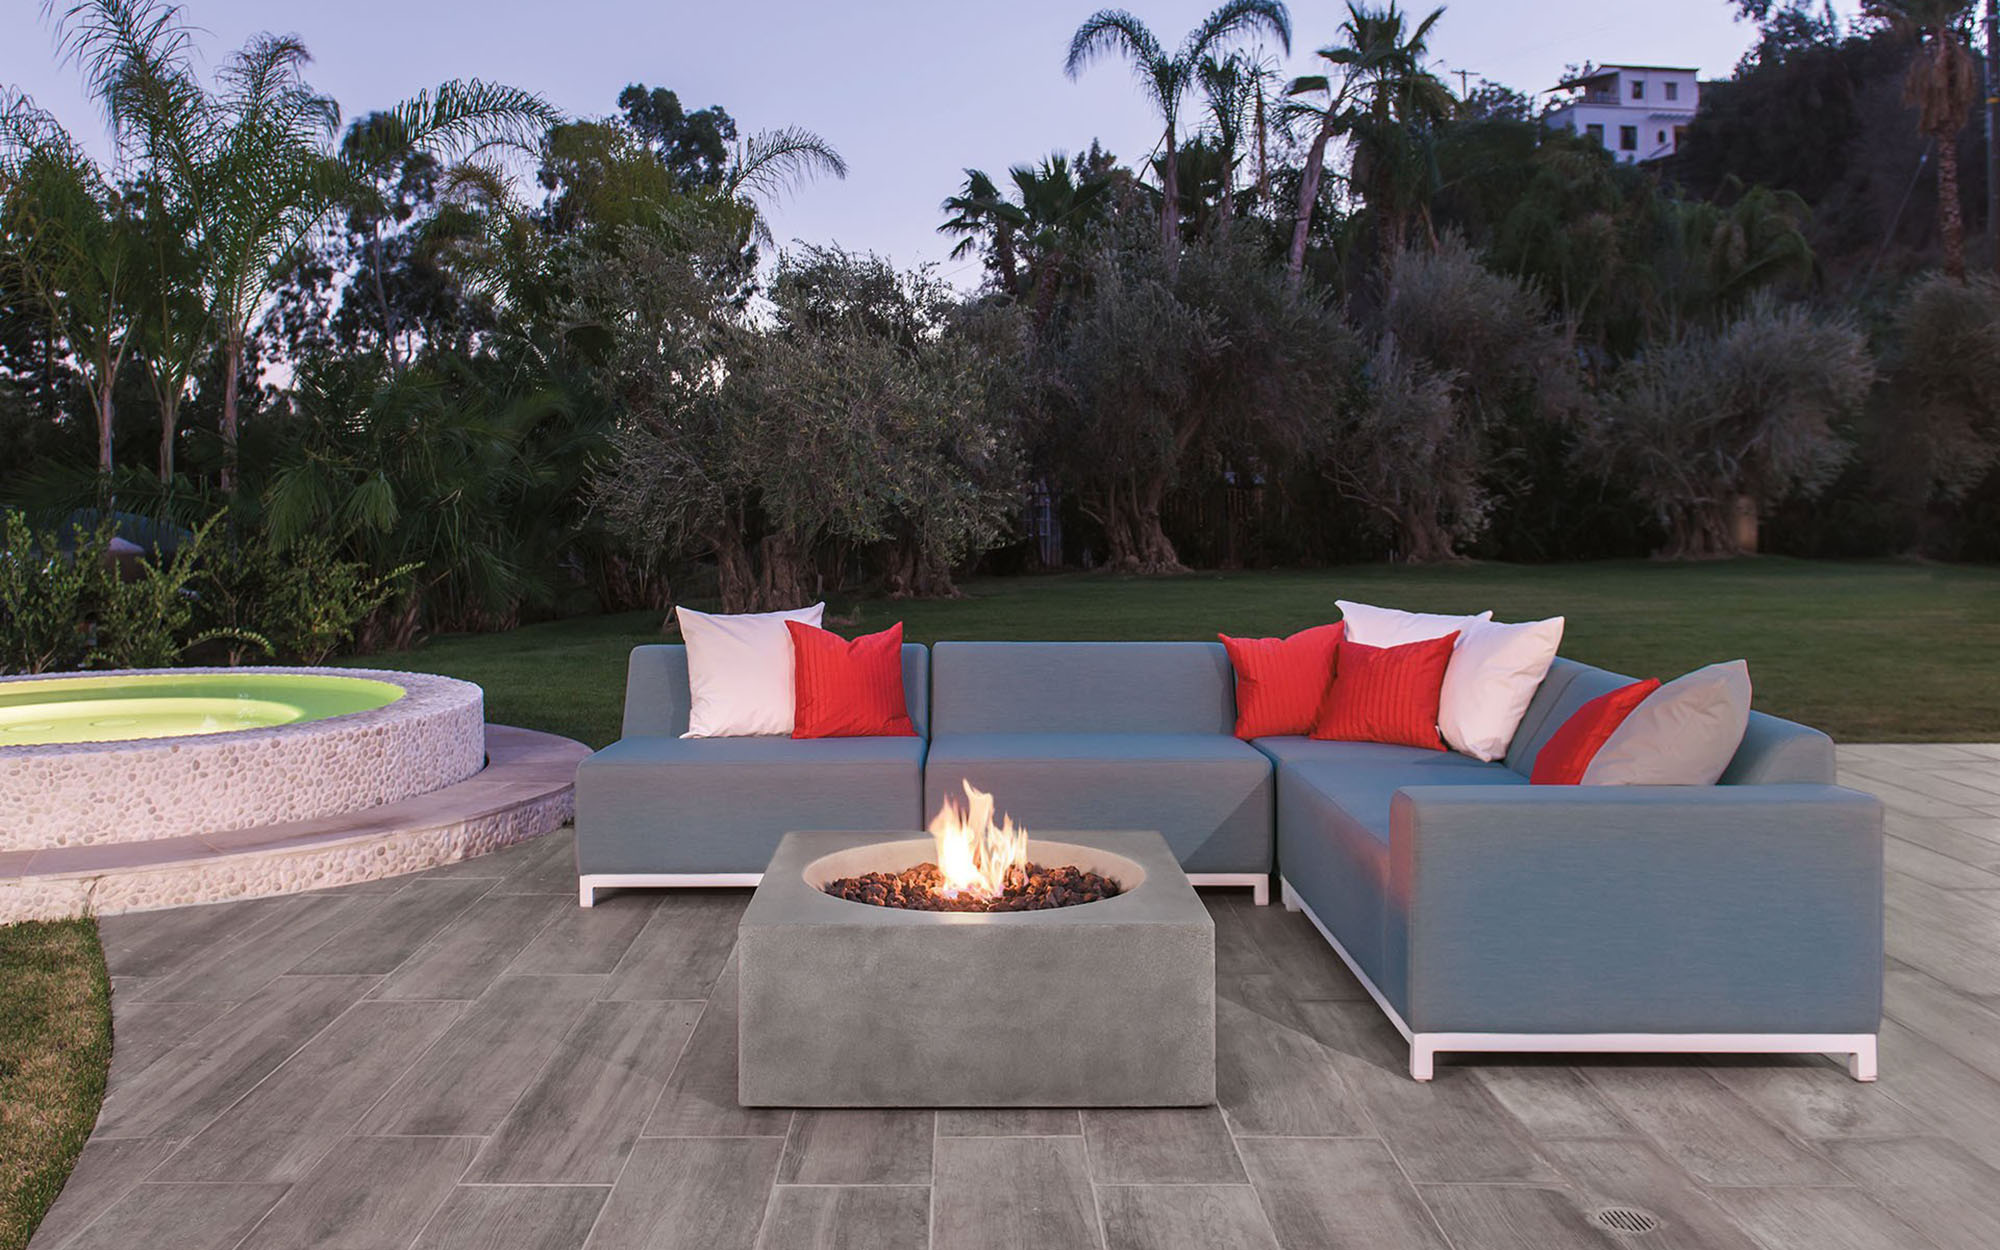 Eldorado Stone Fire Bowls - Eldorado Stone offers fire bowls of all shapes and sizes.  They are available in propane or natural gas.  The fire bowls come ready to install.